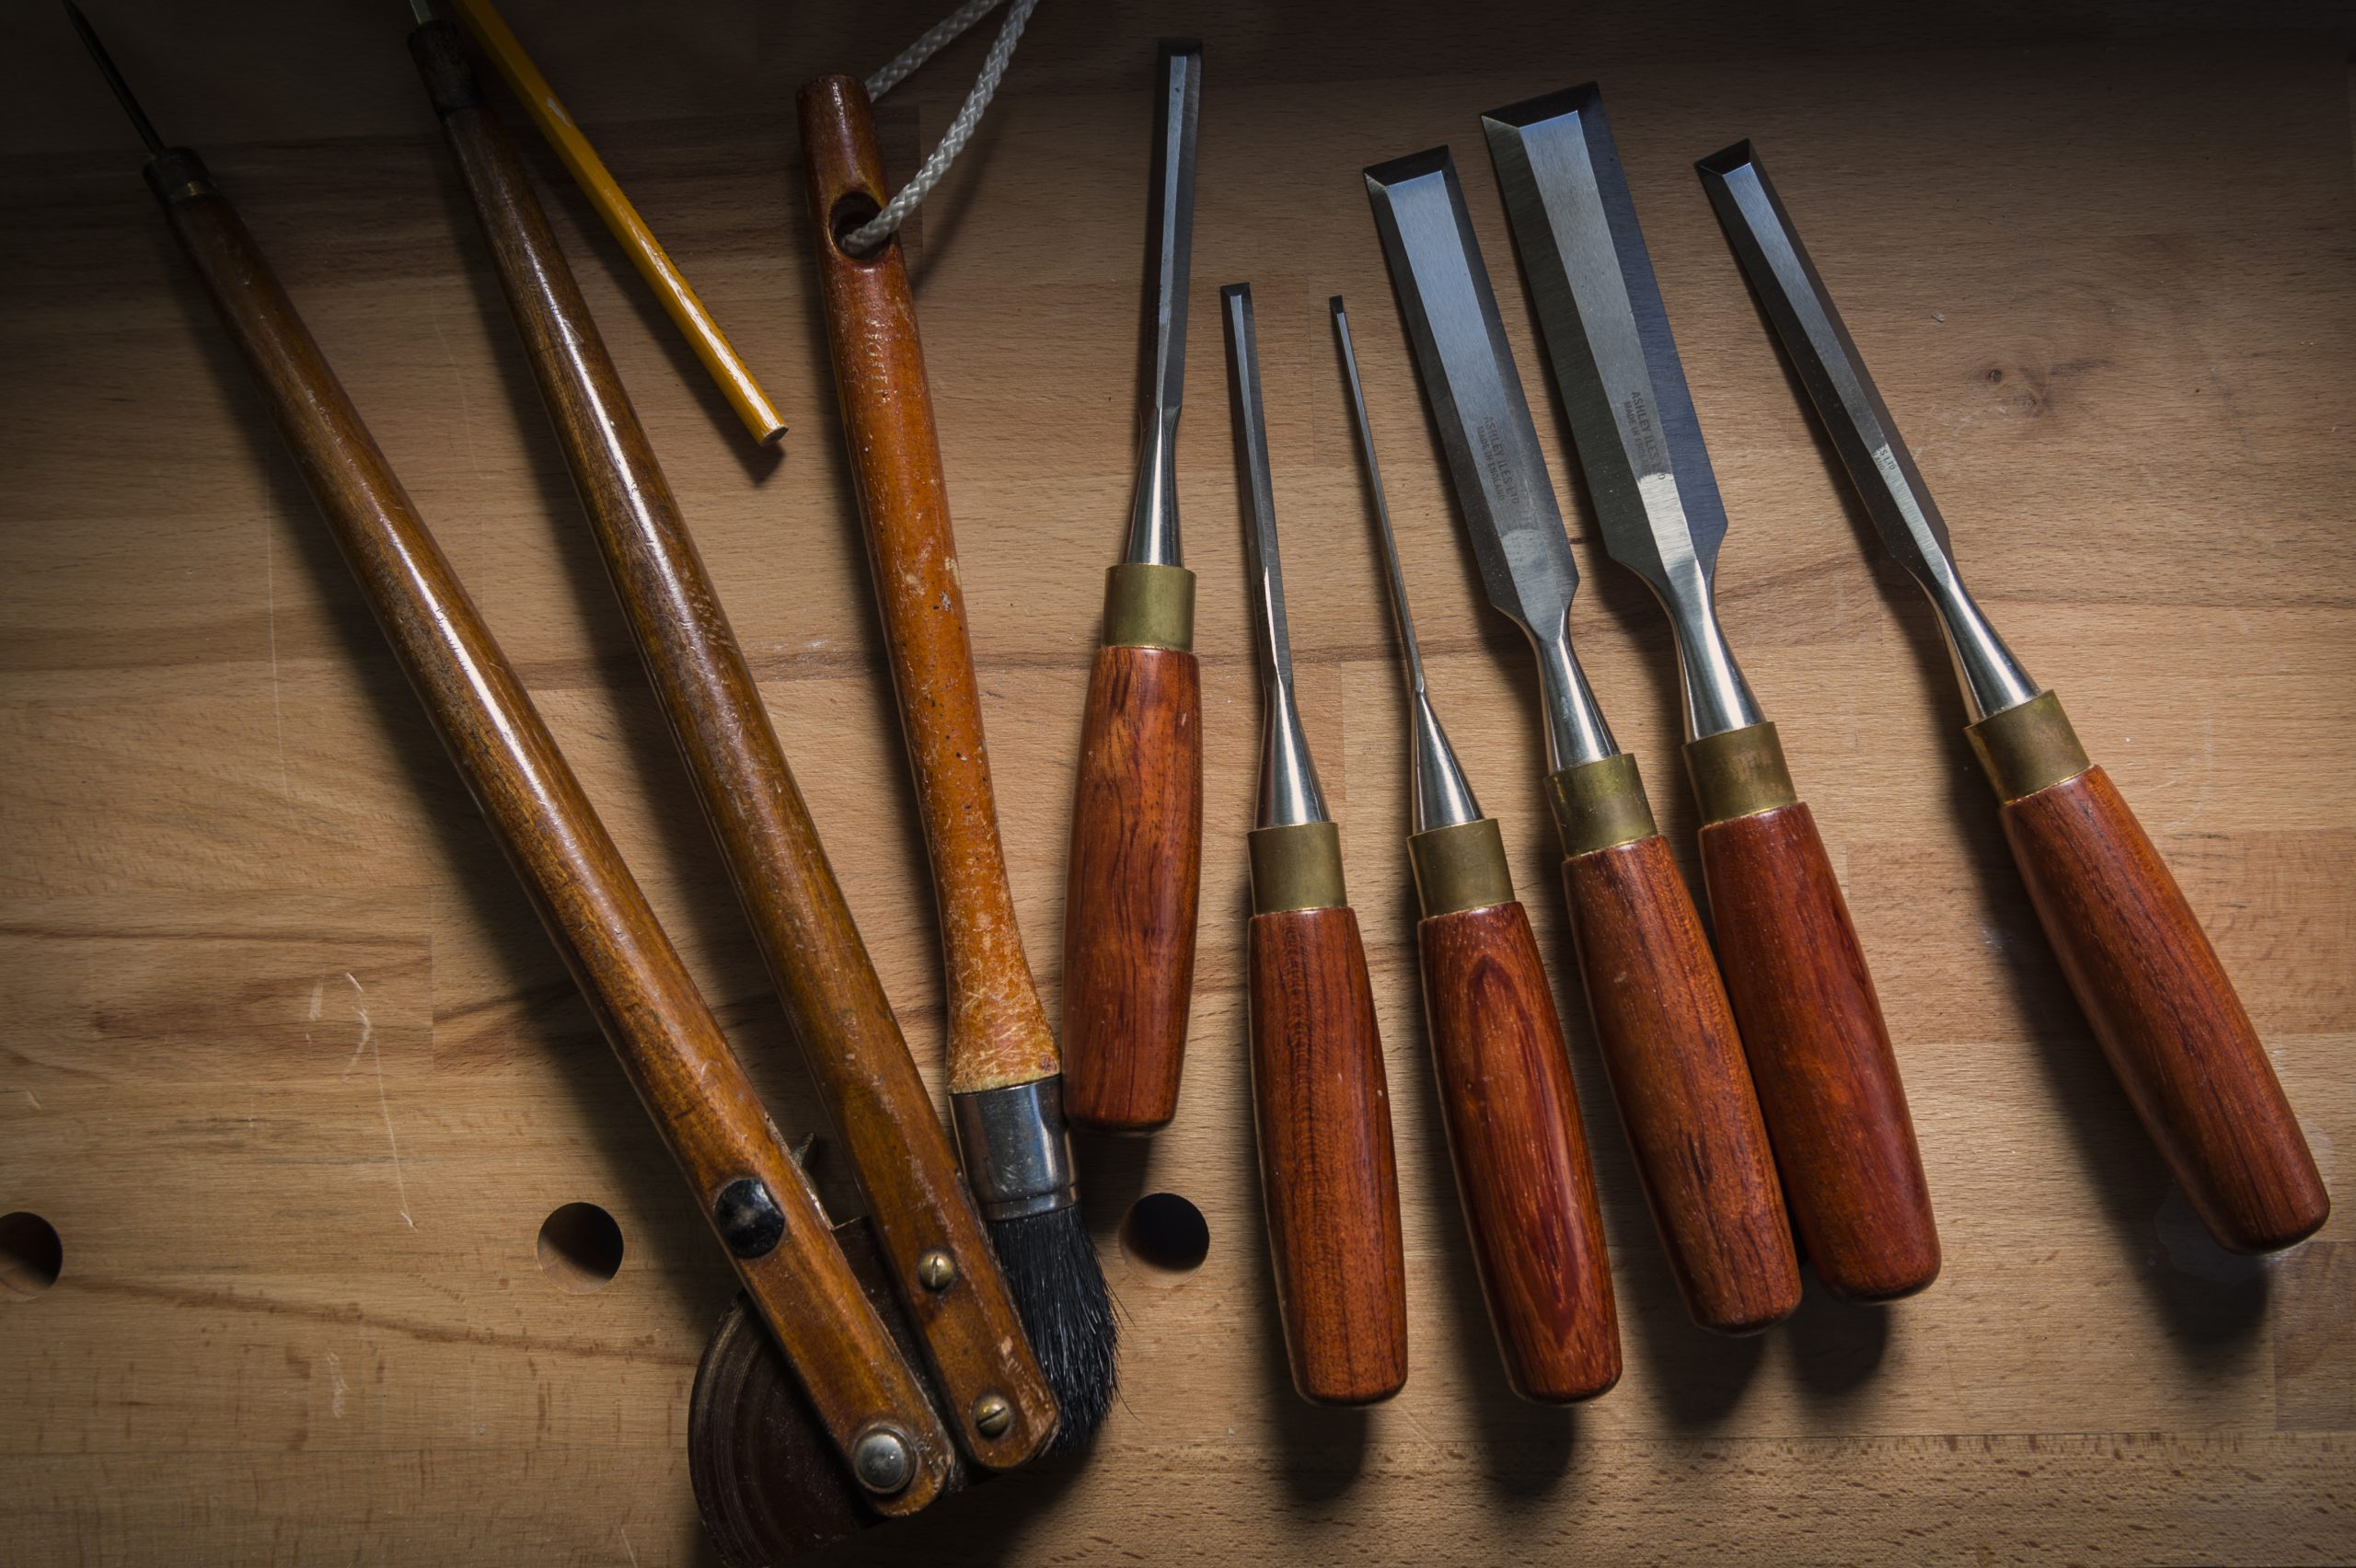 Hand carvong chisels